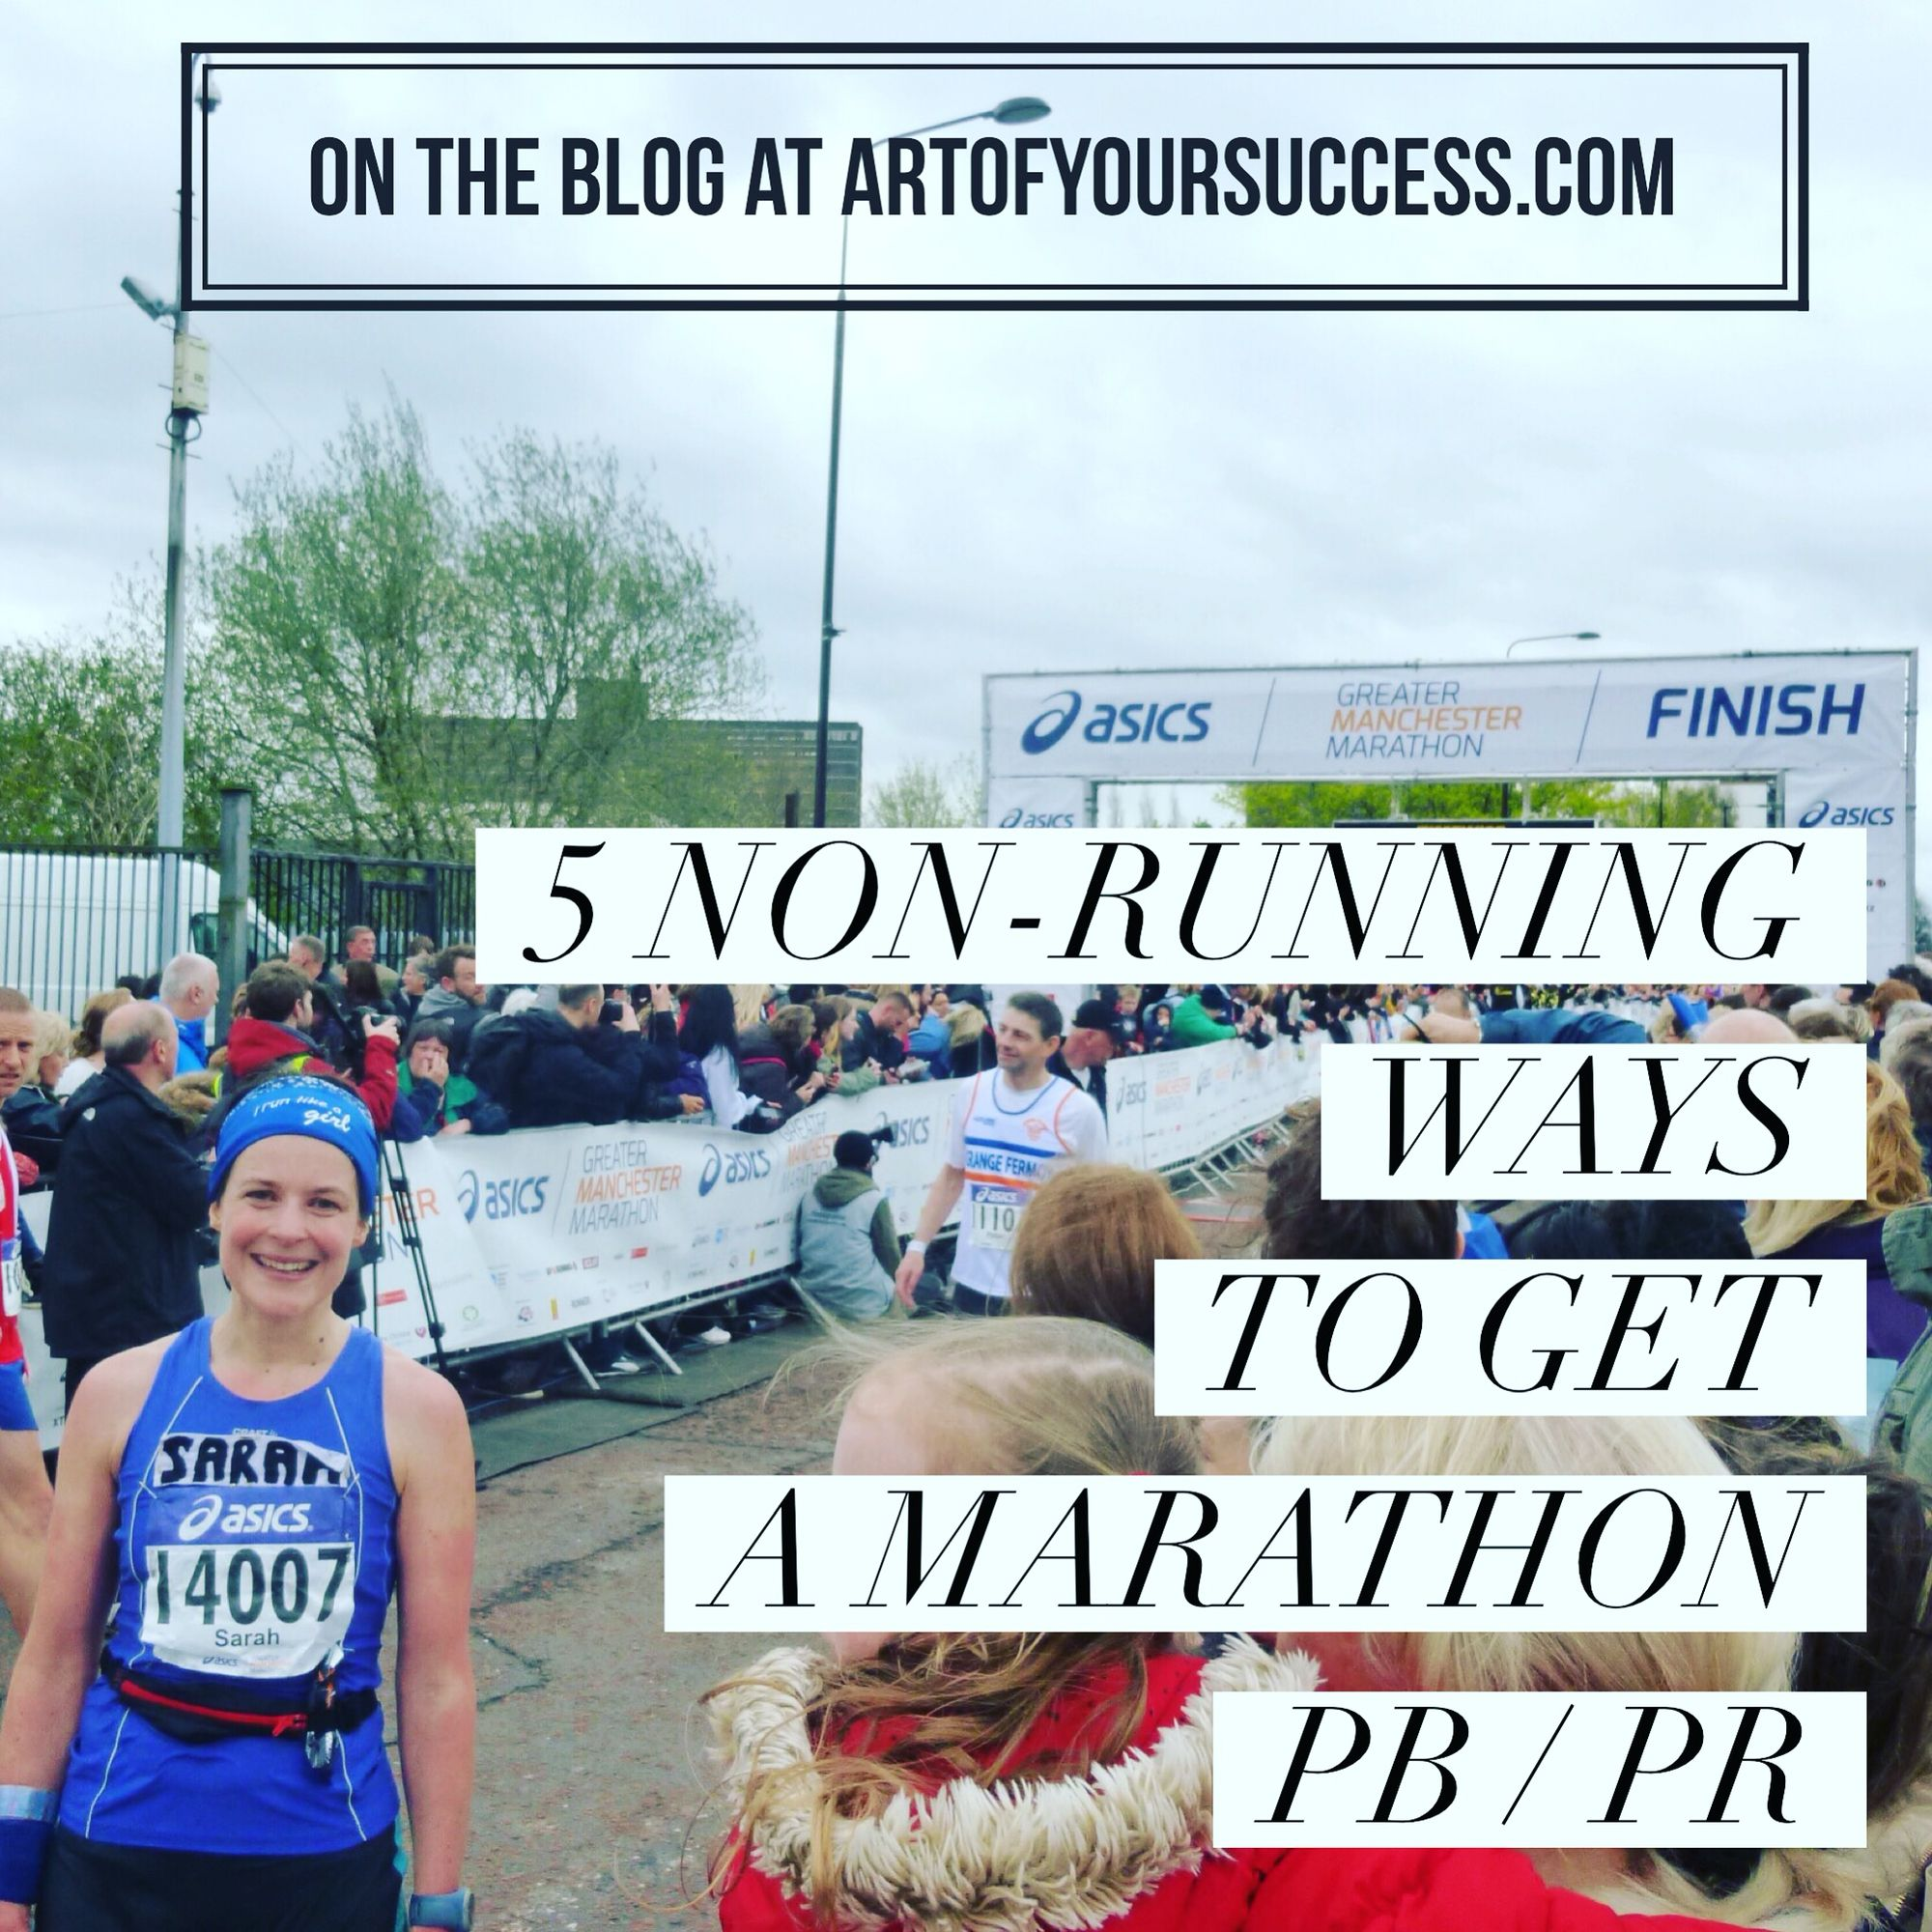 Spring marathons can seem a long way off right now.  Here are a few non-running tips to help you along the way to getting that PB / PR.